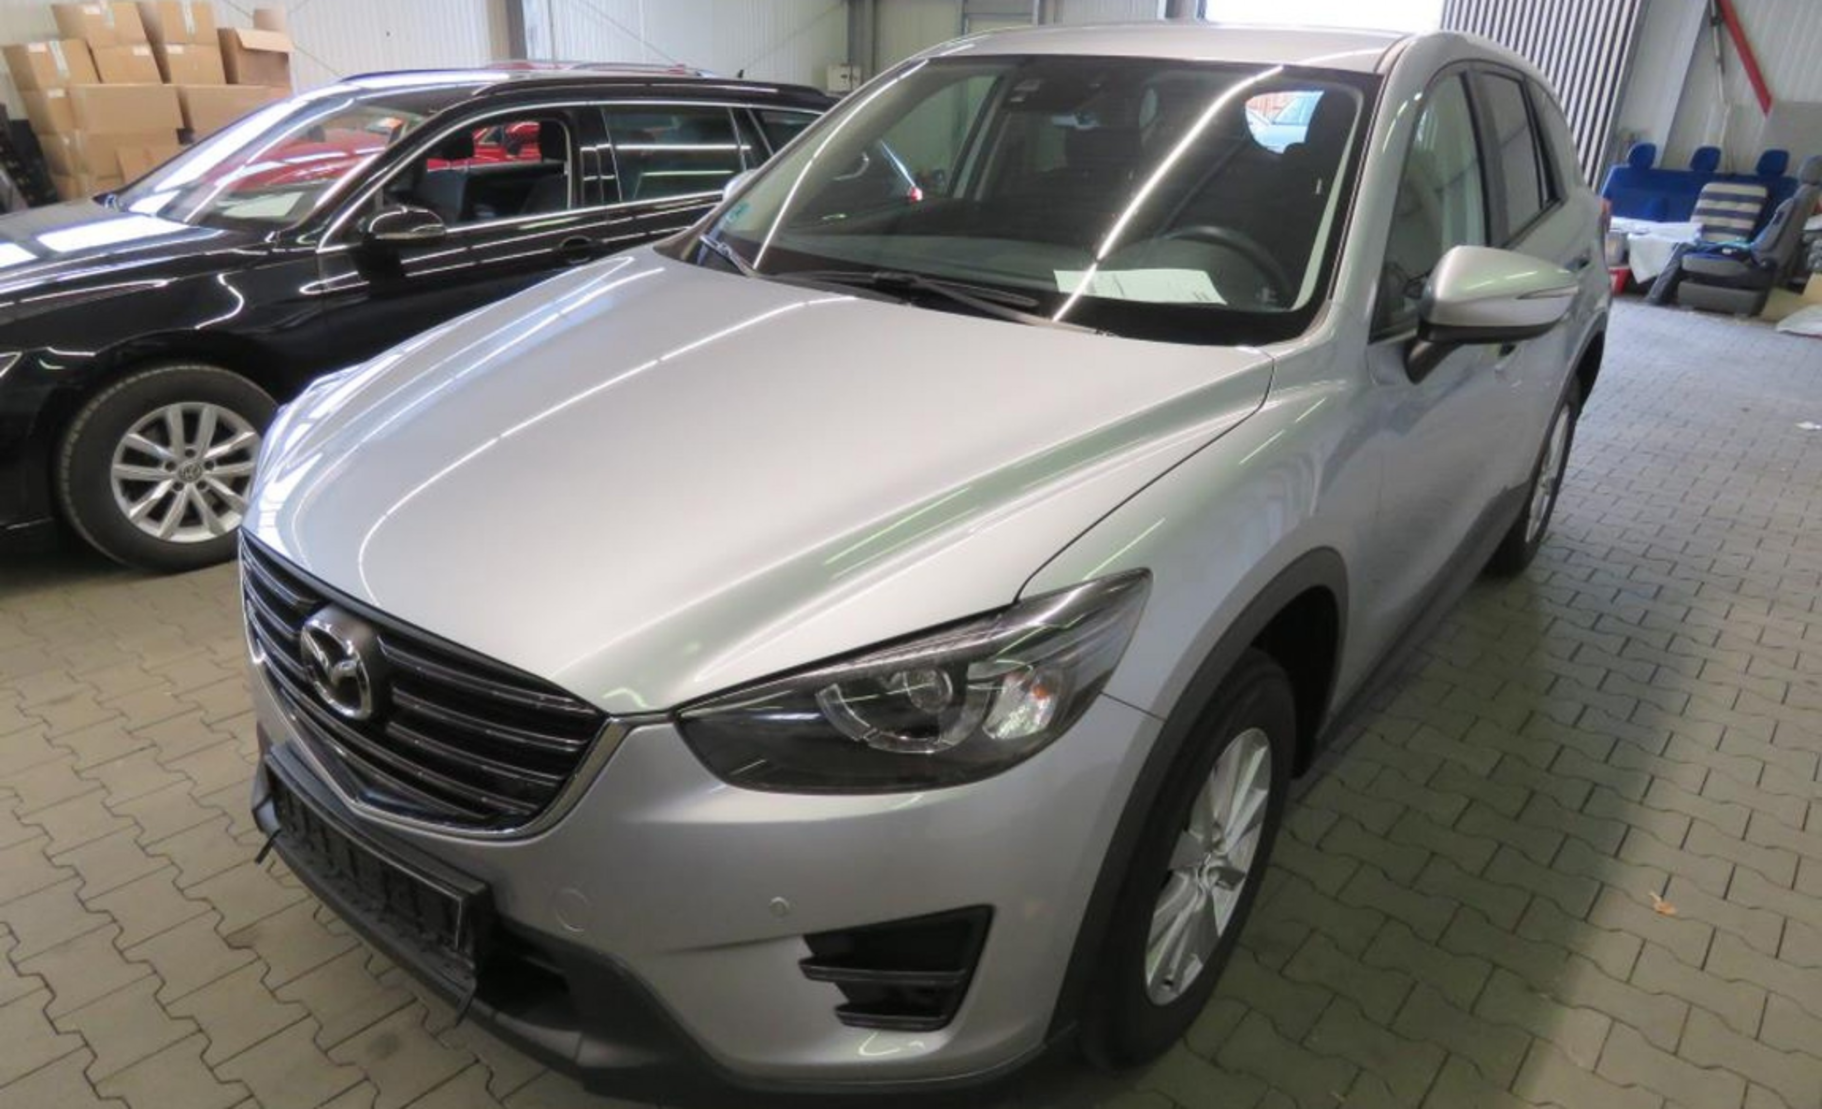 Mazda CX-5 SKYACTIV-D 150 Exclusive-Line (588238) detail1